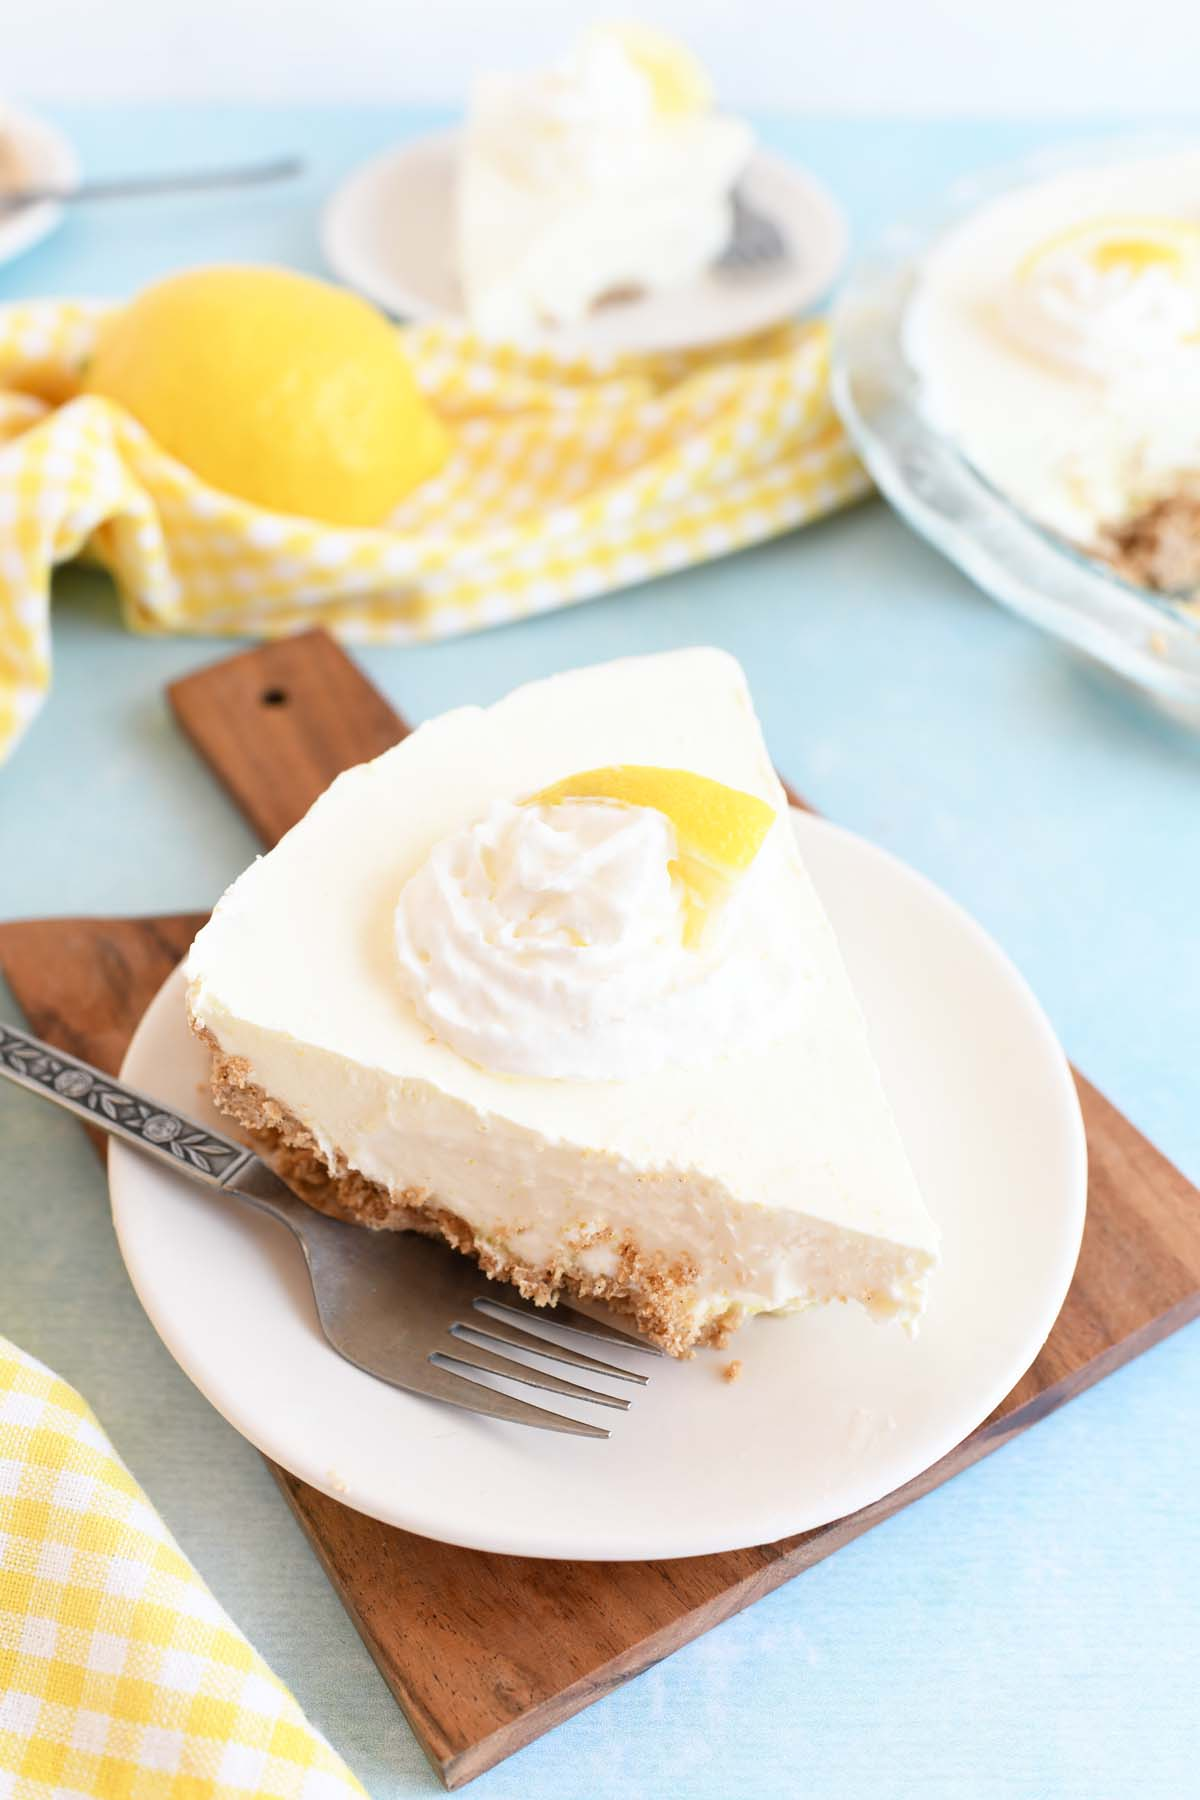 Lemon Jello Pie on a small white plate with a wooden cutting board and fork.